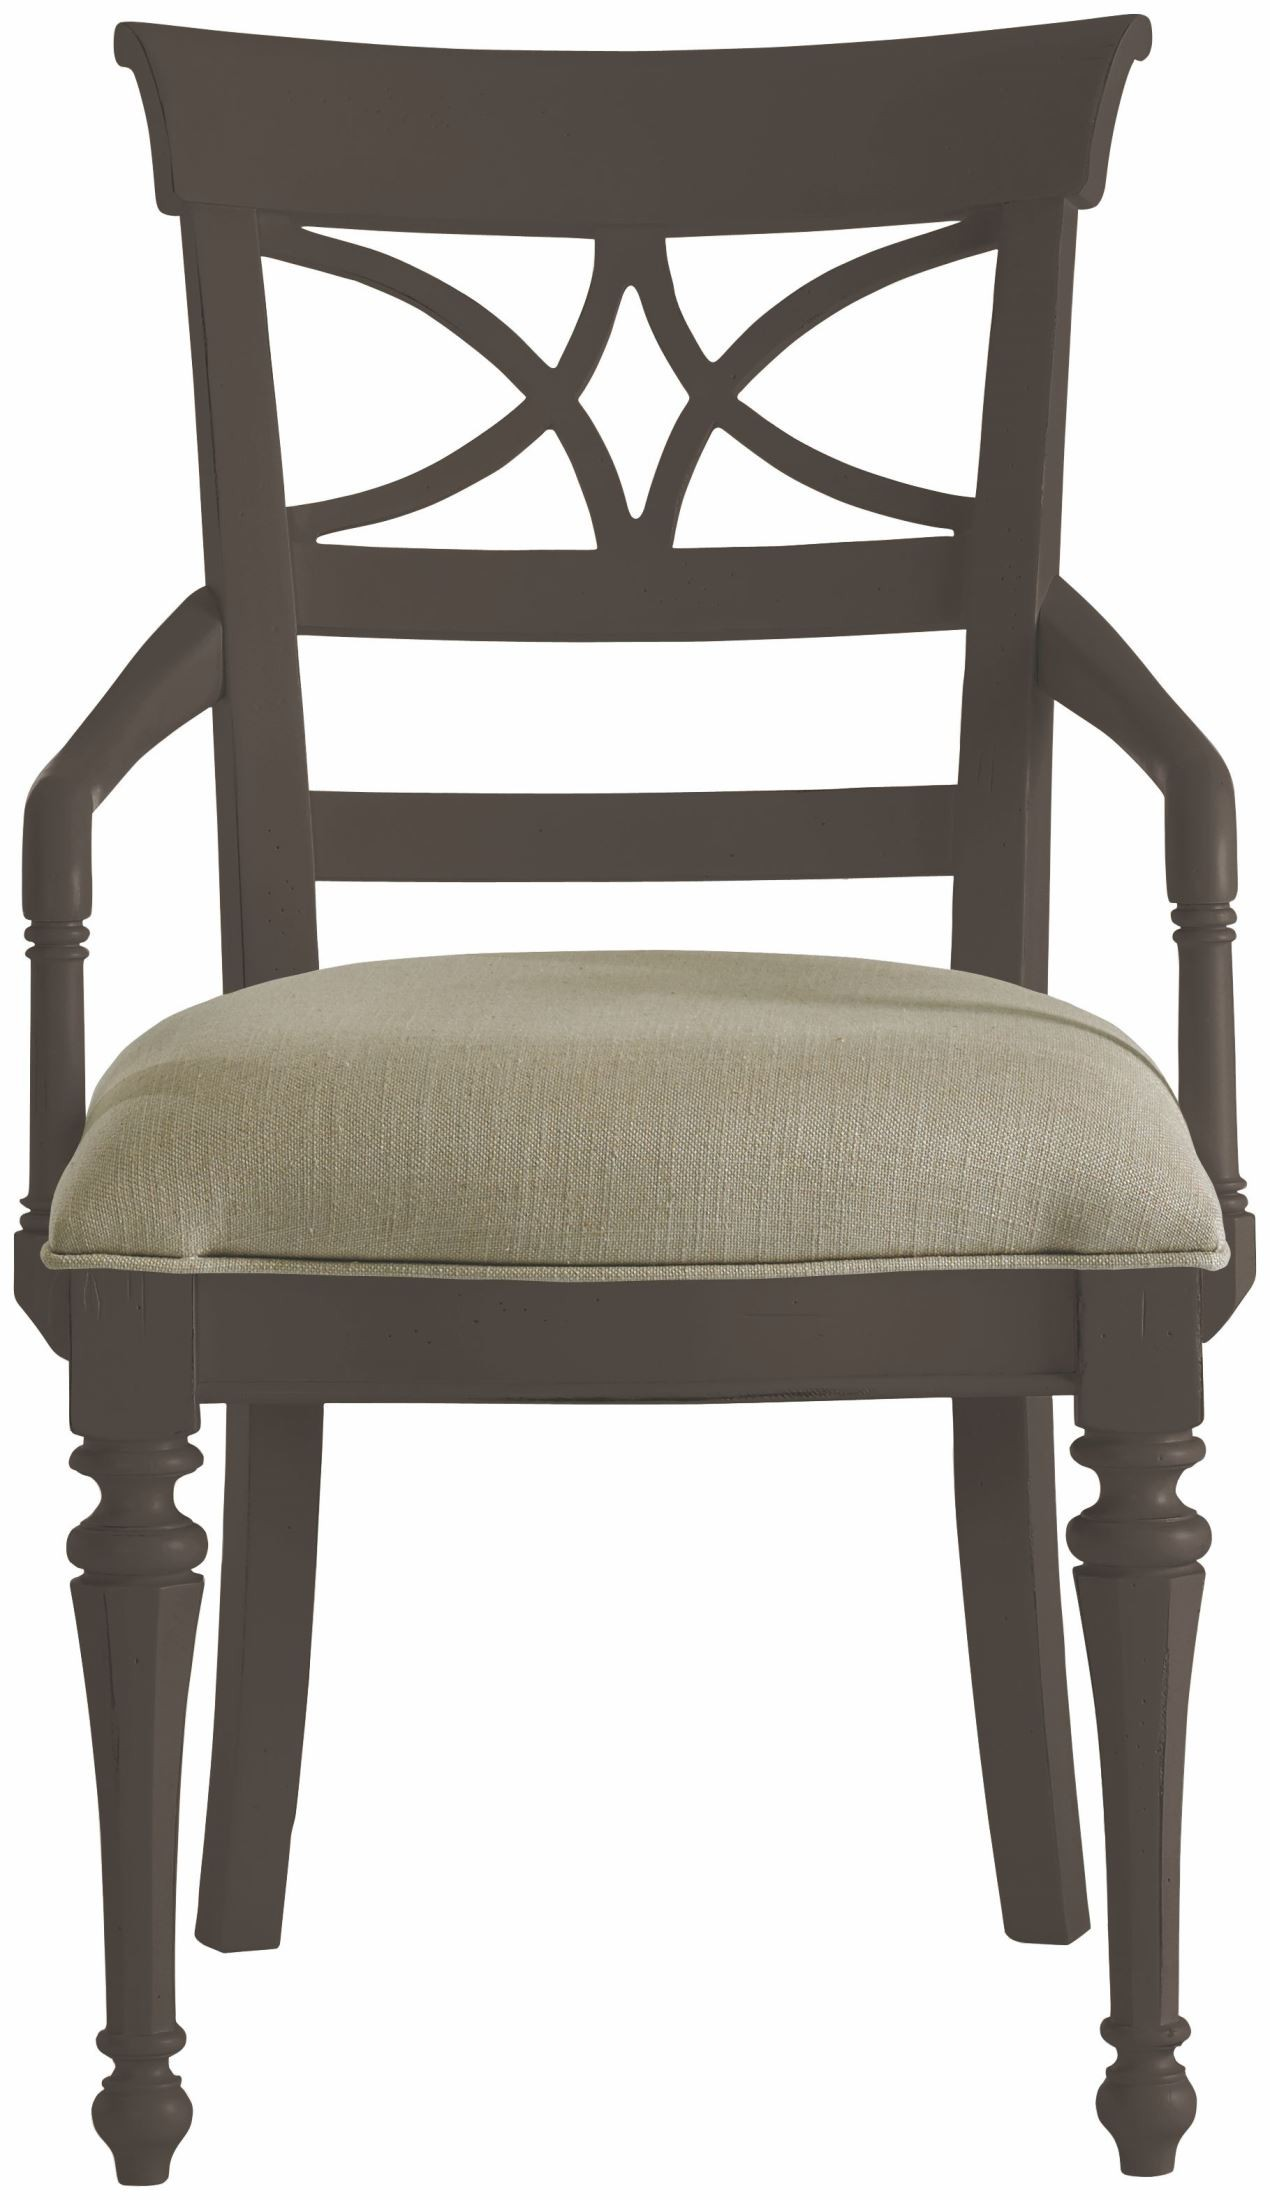 Coastal living gloucester grey sea watch arm chair from for Coastal furniture